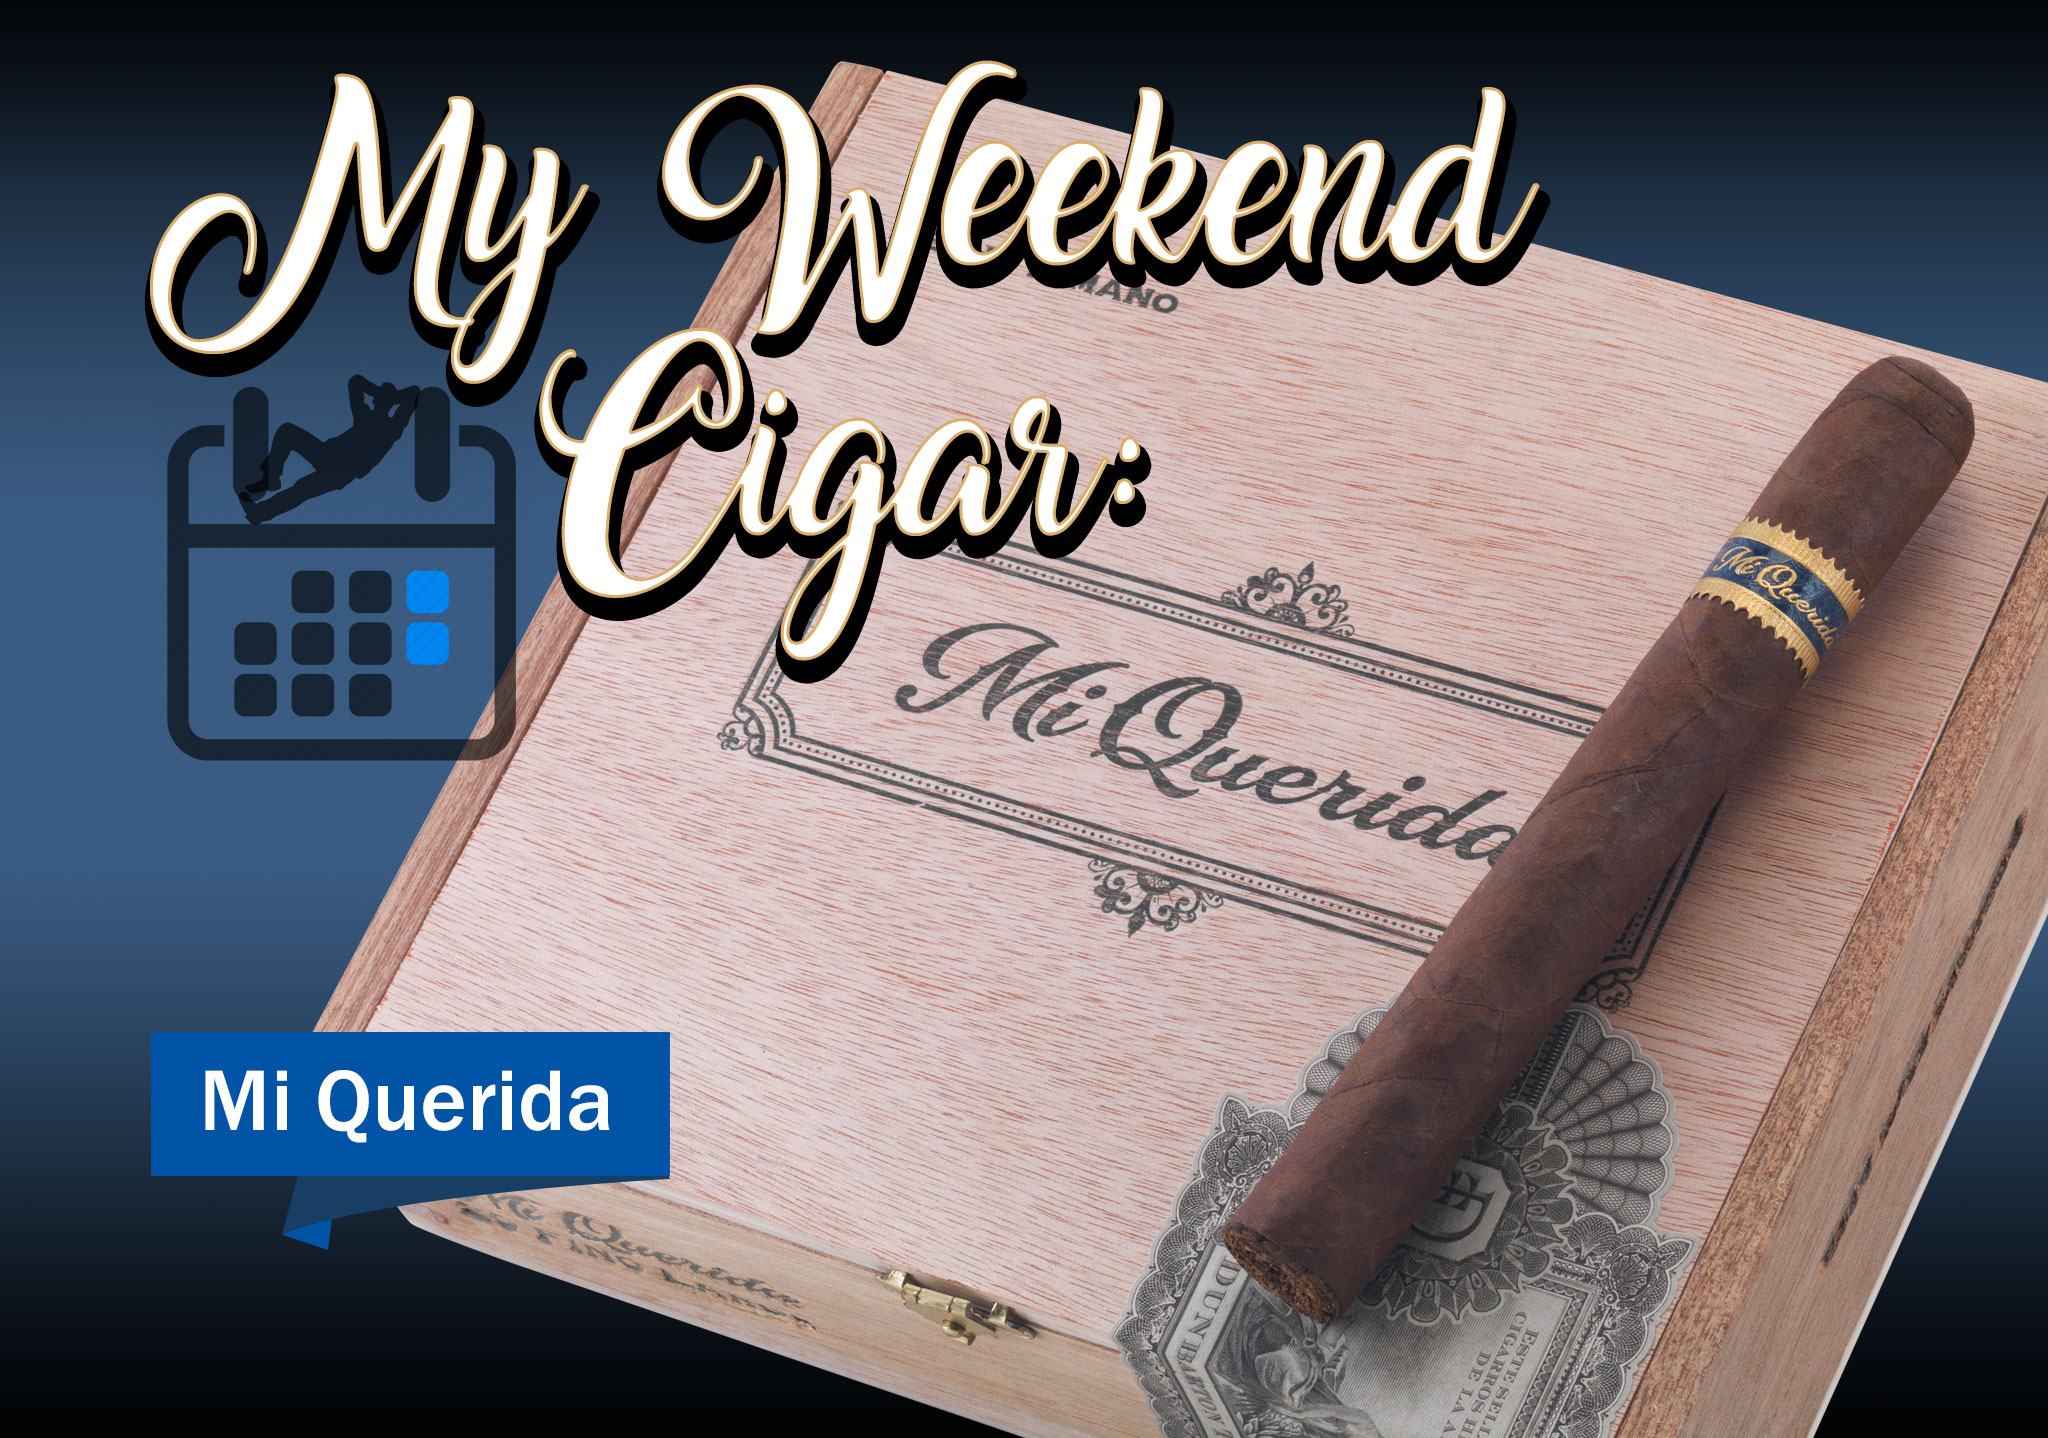 My Weekend Cigar: Nov. 27, 2017 – Mi Querida